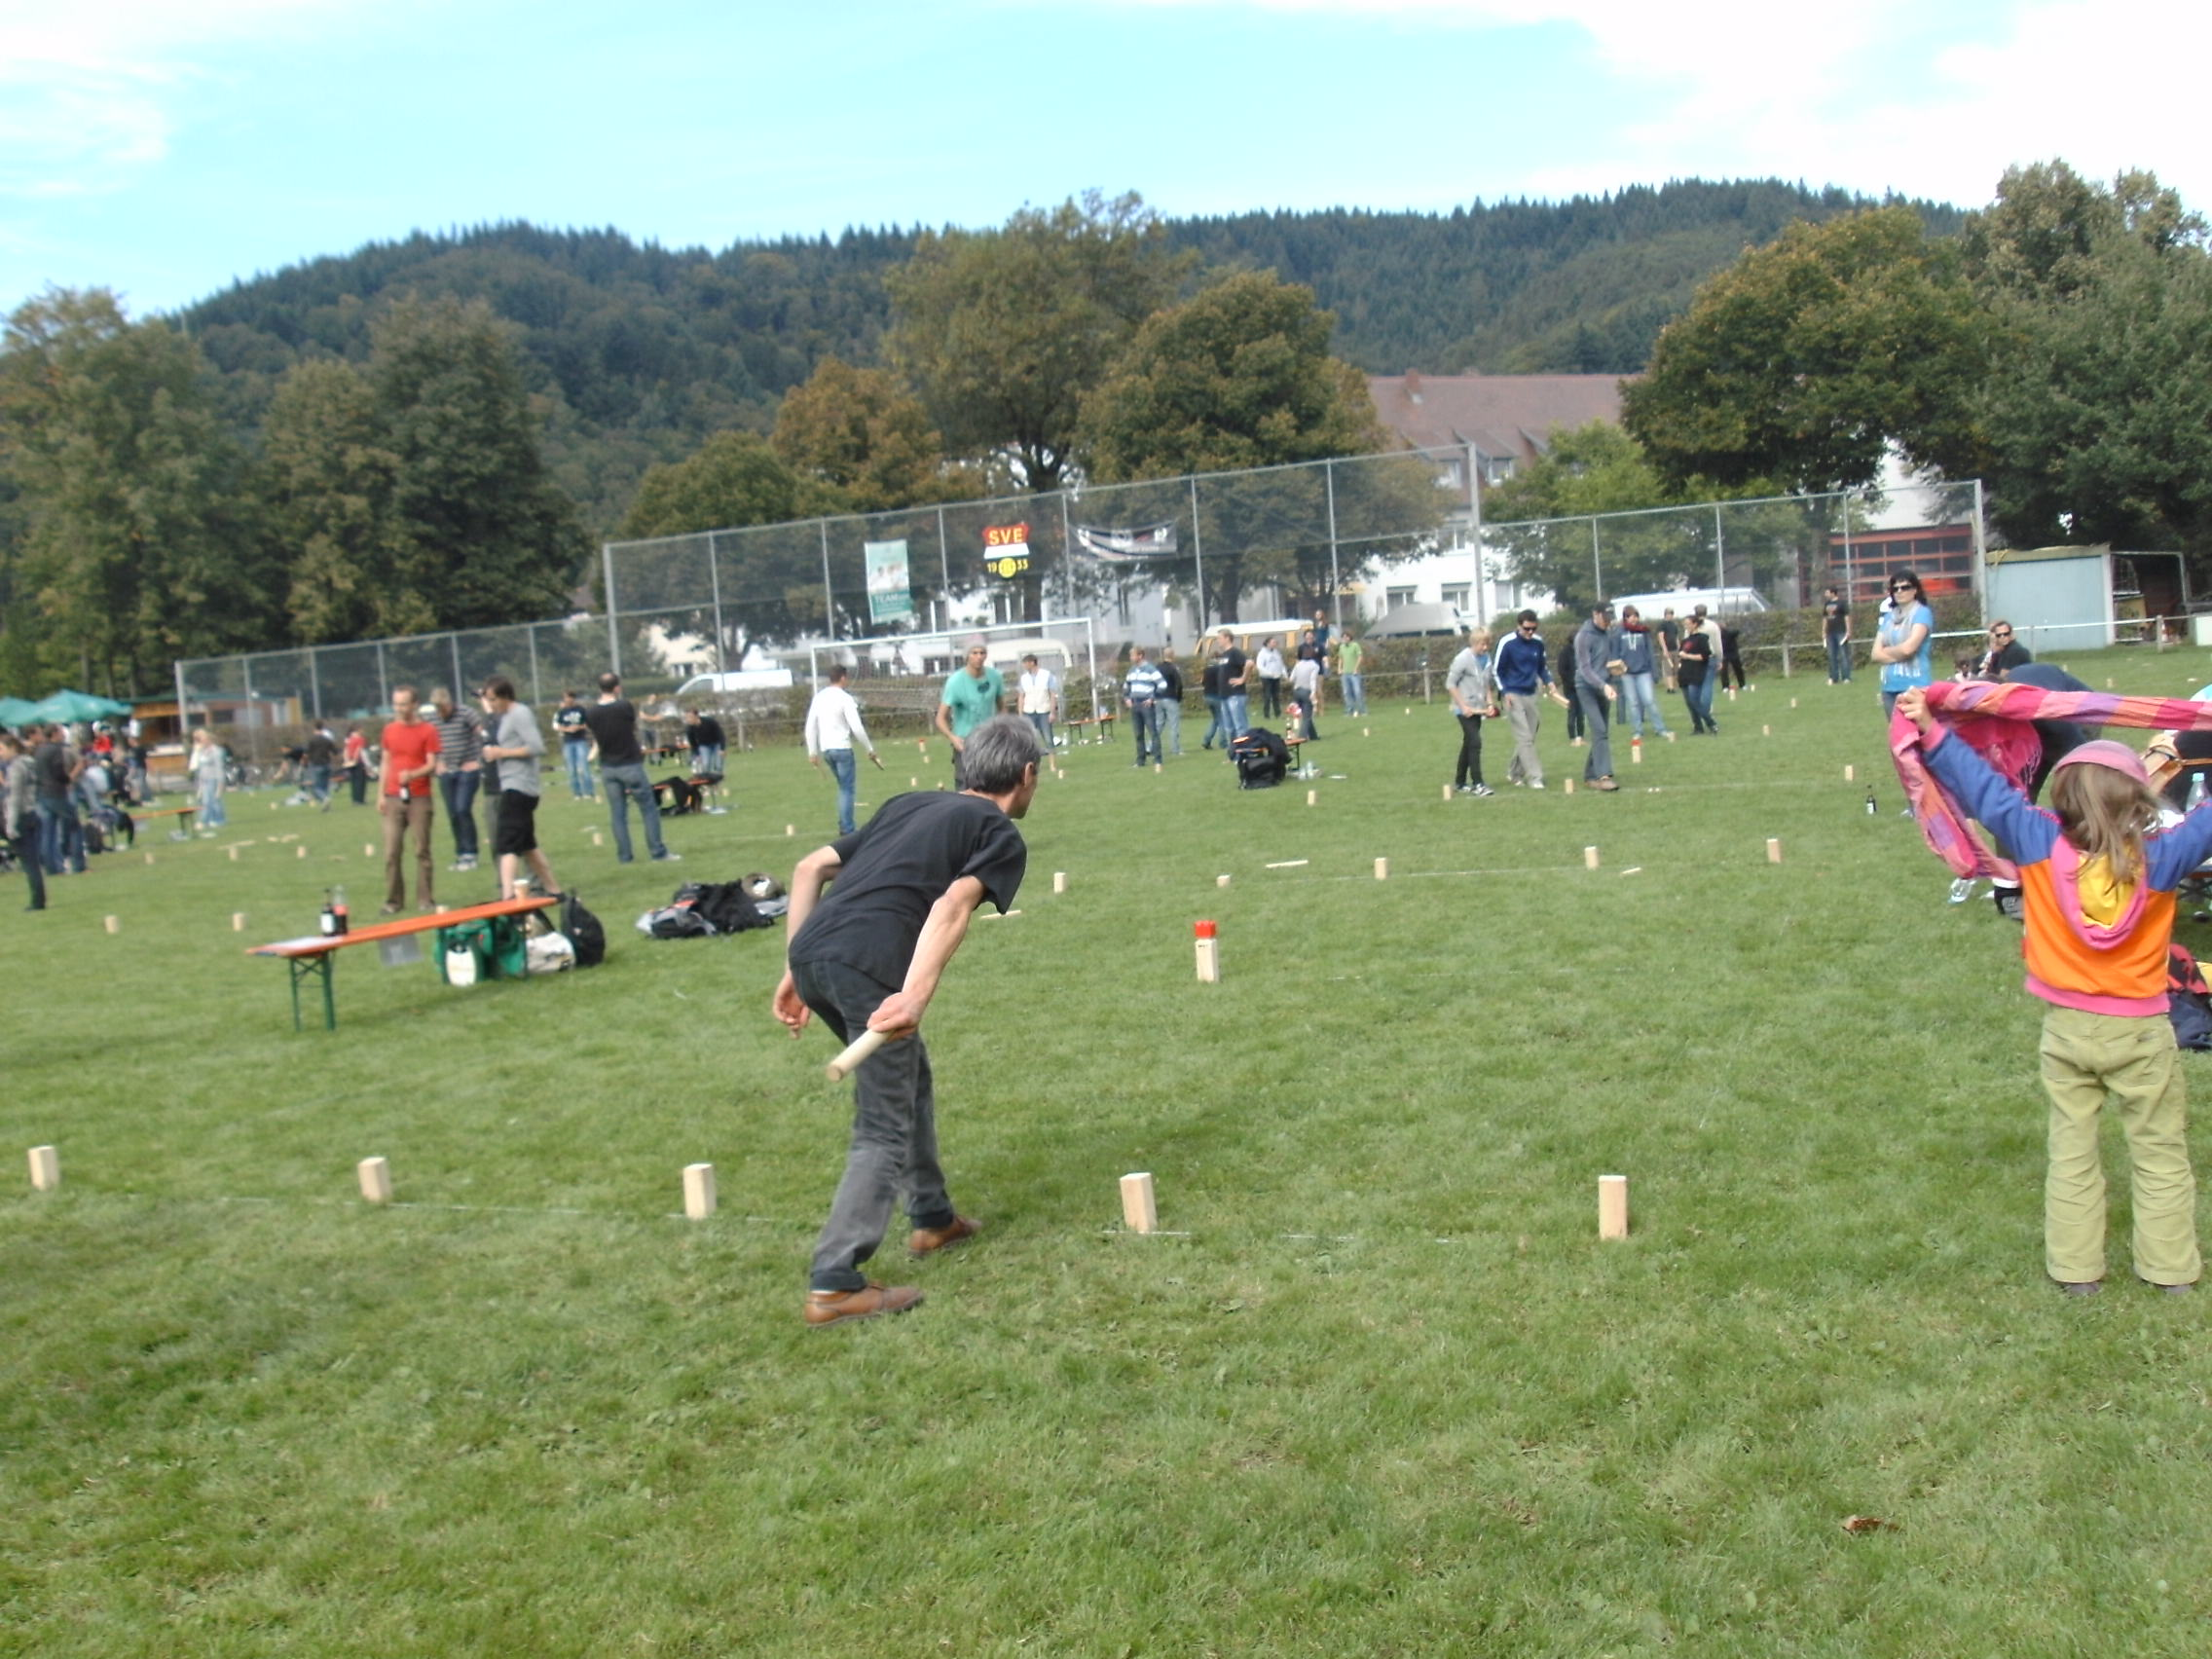 Giocare a Kubb